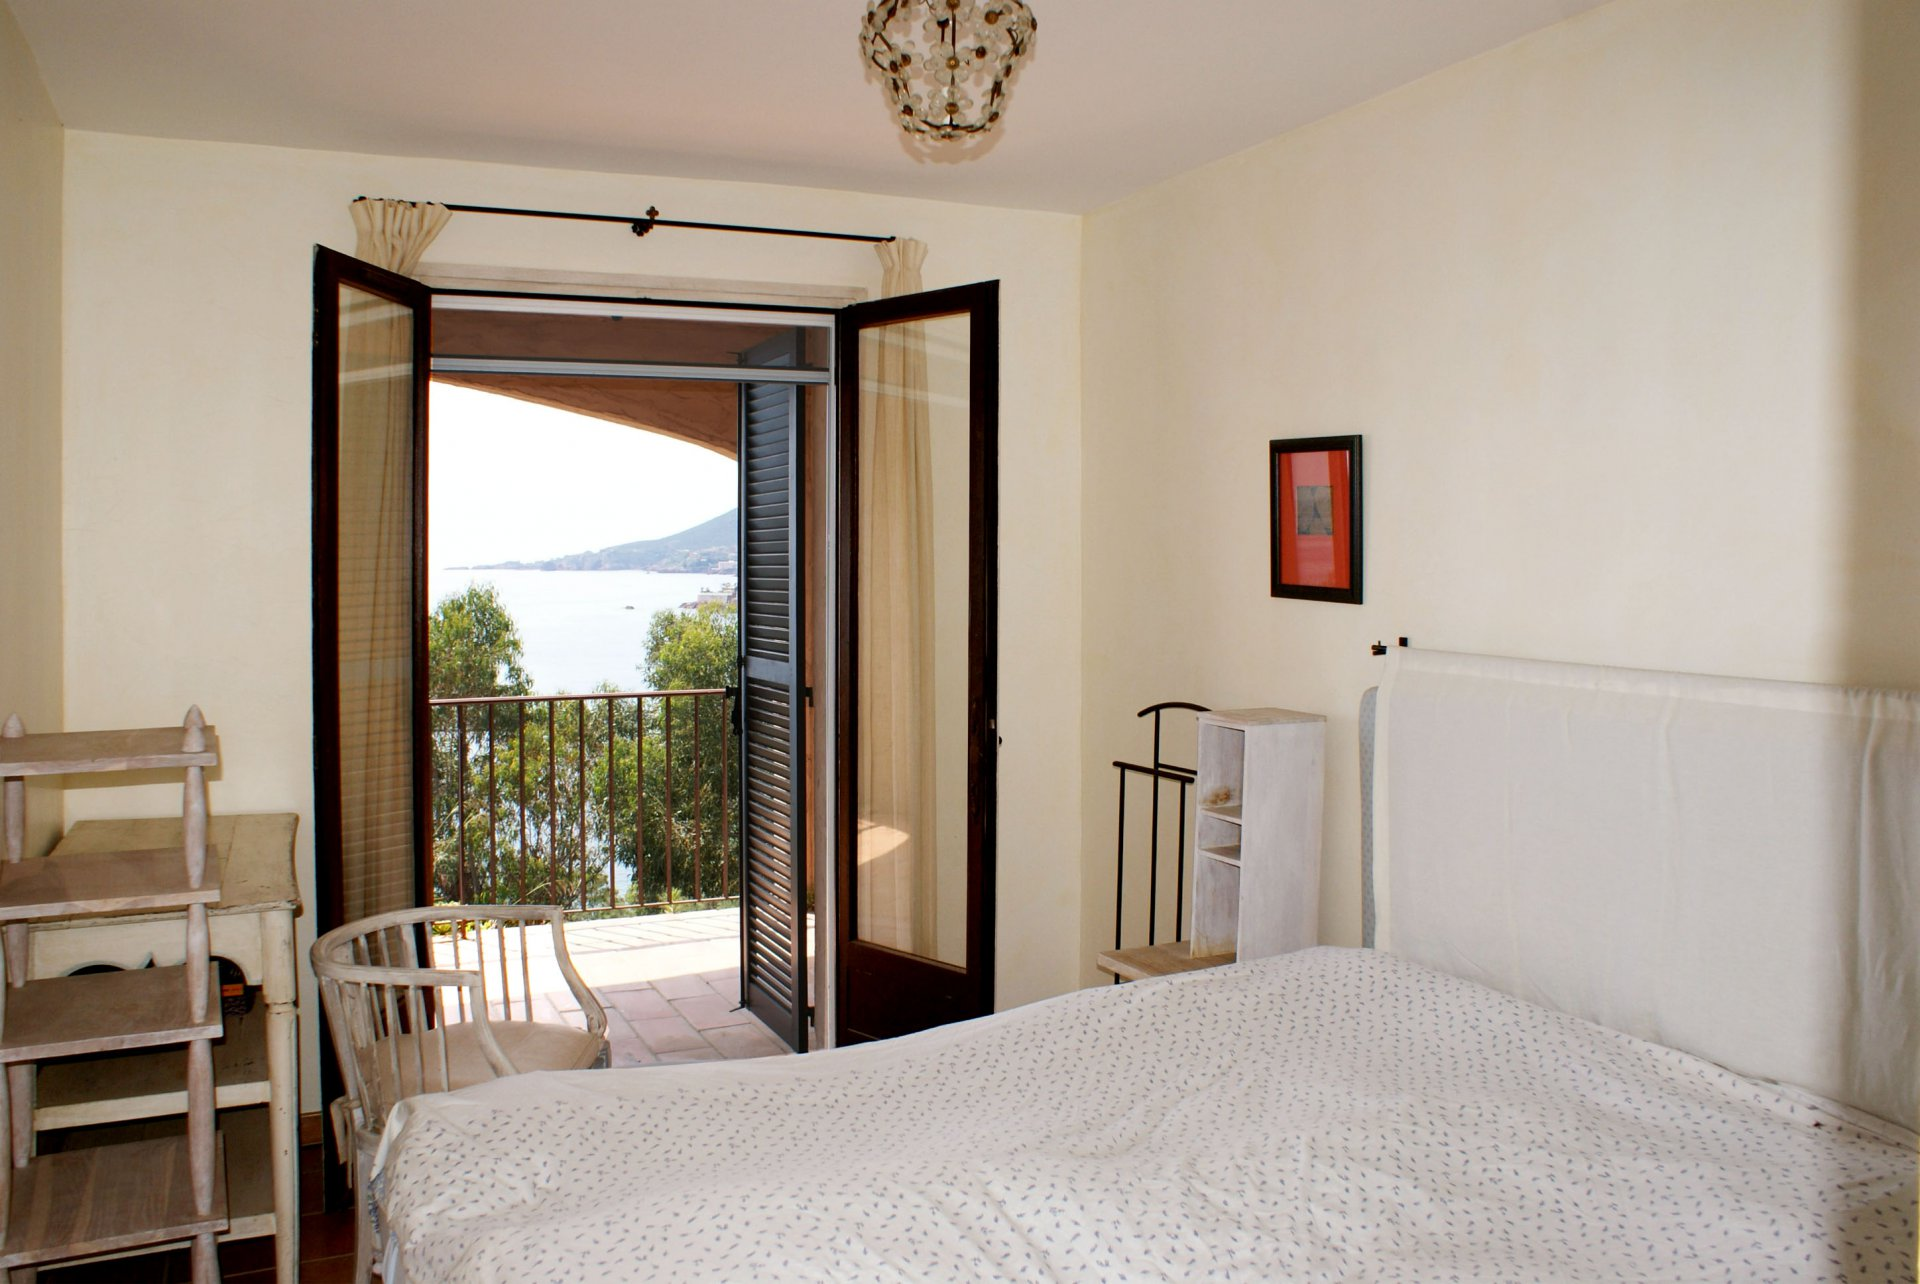 Exceptional panoramic sea view  comfortable semi detached house, 3 bed rooms (6 sleeps)  * ROCA V46 *